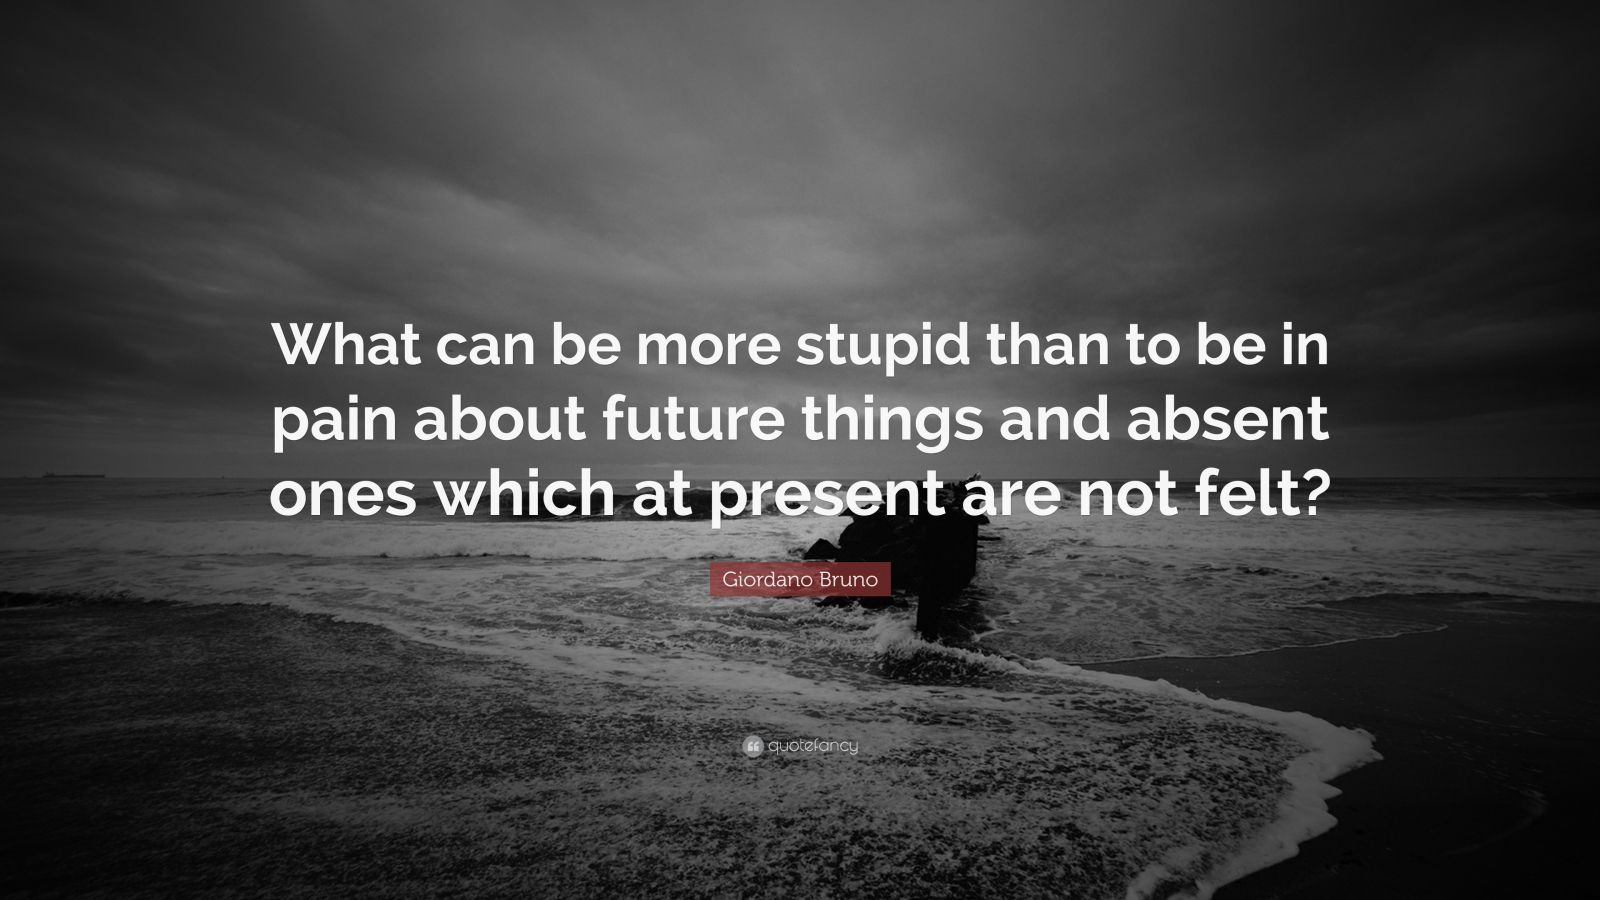 """Giordano Bruno Quote: """"What can be more stupid than to be in pain about future things and absent ones which at present are not felt?"""""""